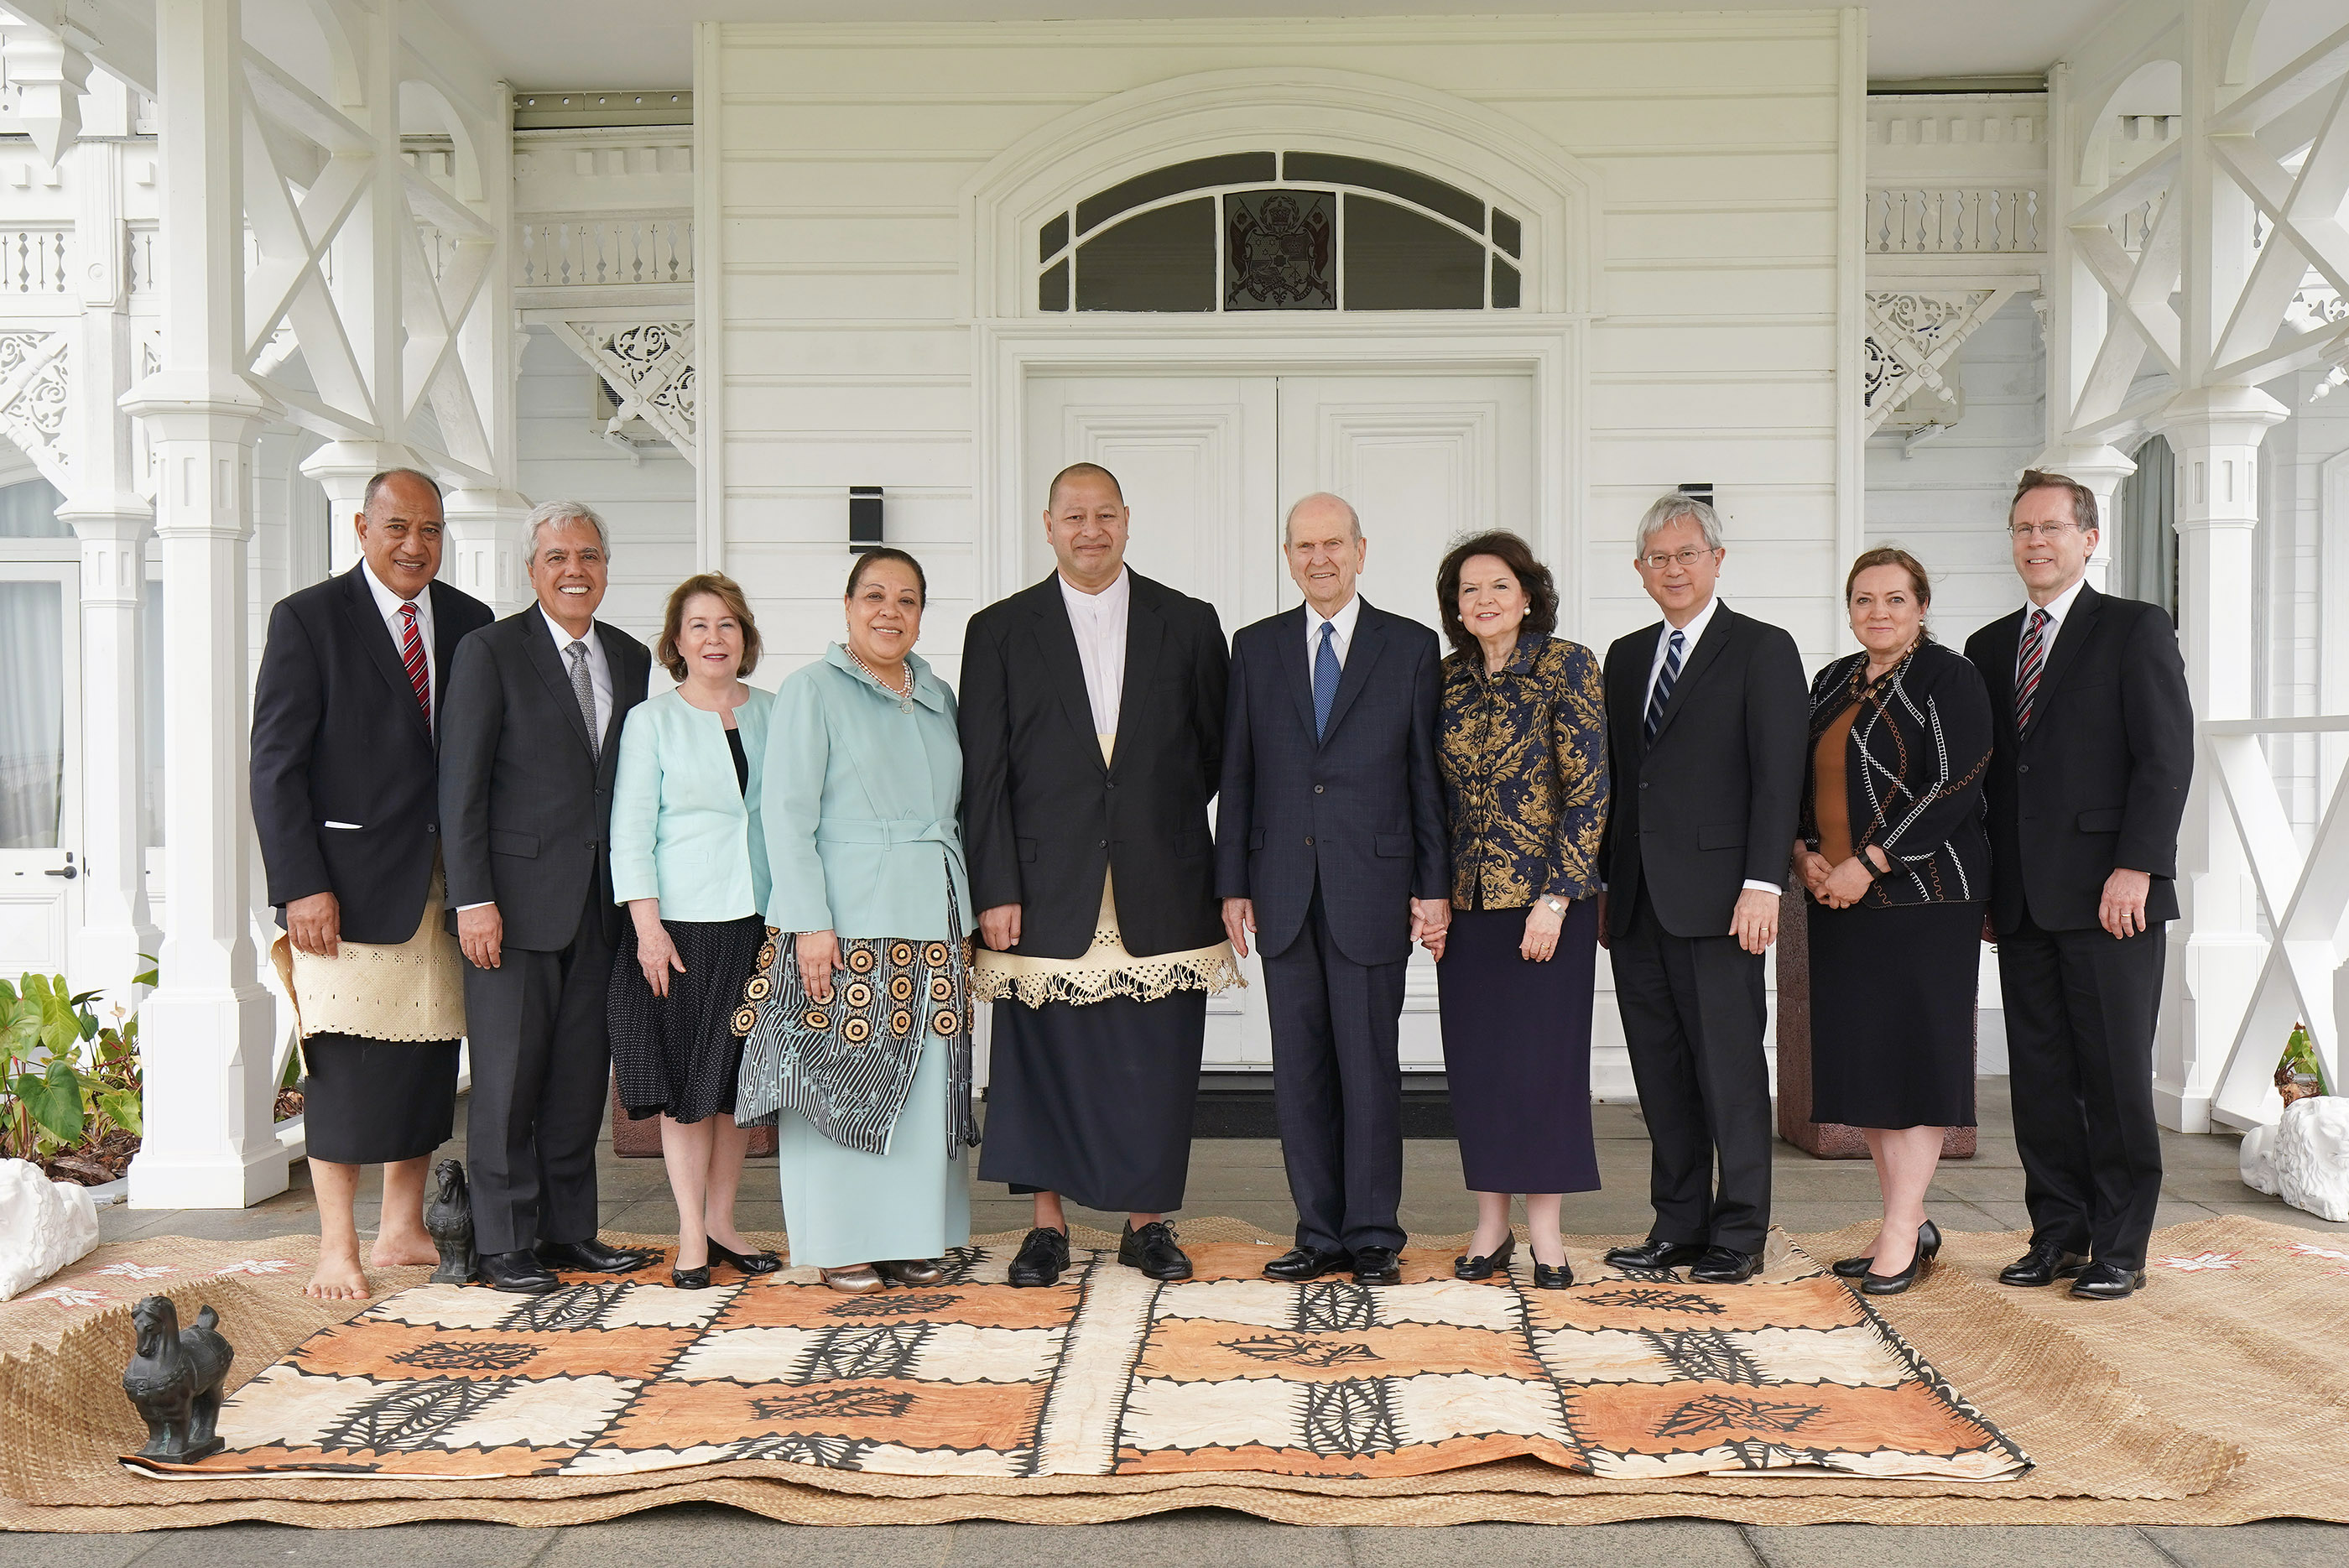 President Russell M. Nelson of The Church of Jesus Christ of Latter-day Saints and his wife Sister Wendy Nelson meet with Her Majesty Queen Nanasipau'u and His Majesty King Tupou VI at the Royal Palace in Tonga on May 23, 2019. Also pictured are Elder Gerrit W. Gong, of The Church of Jesus Christ of Latter-day Saints' Quorum of the Twelve Apostles and his wife Sister Susan Gong and Elder O. Vincent Haleck and his wife Sister Peggy Haleck.